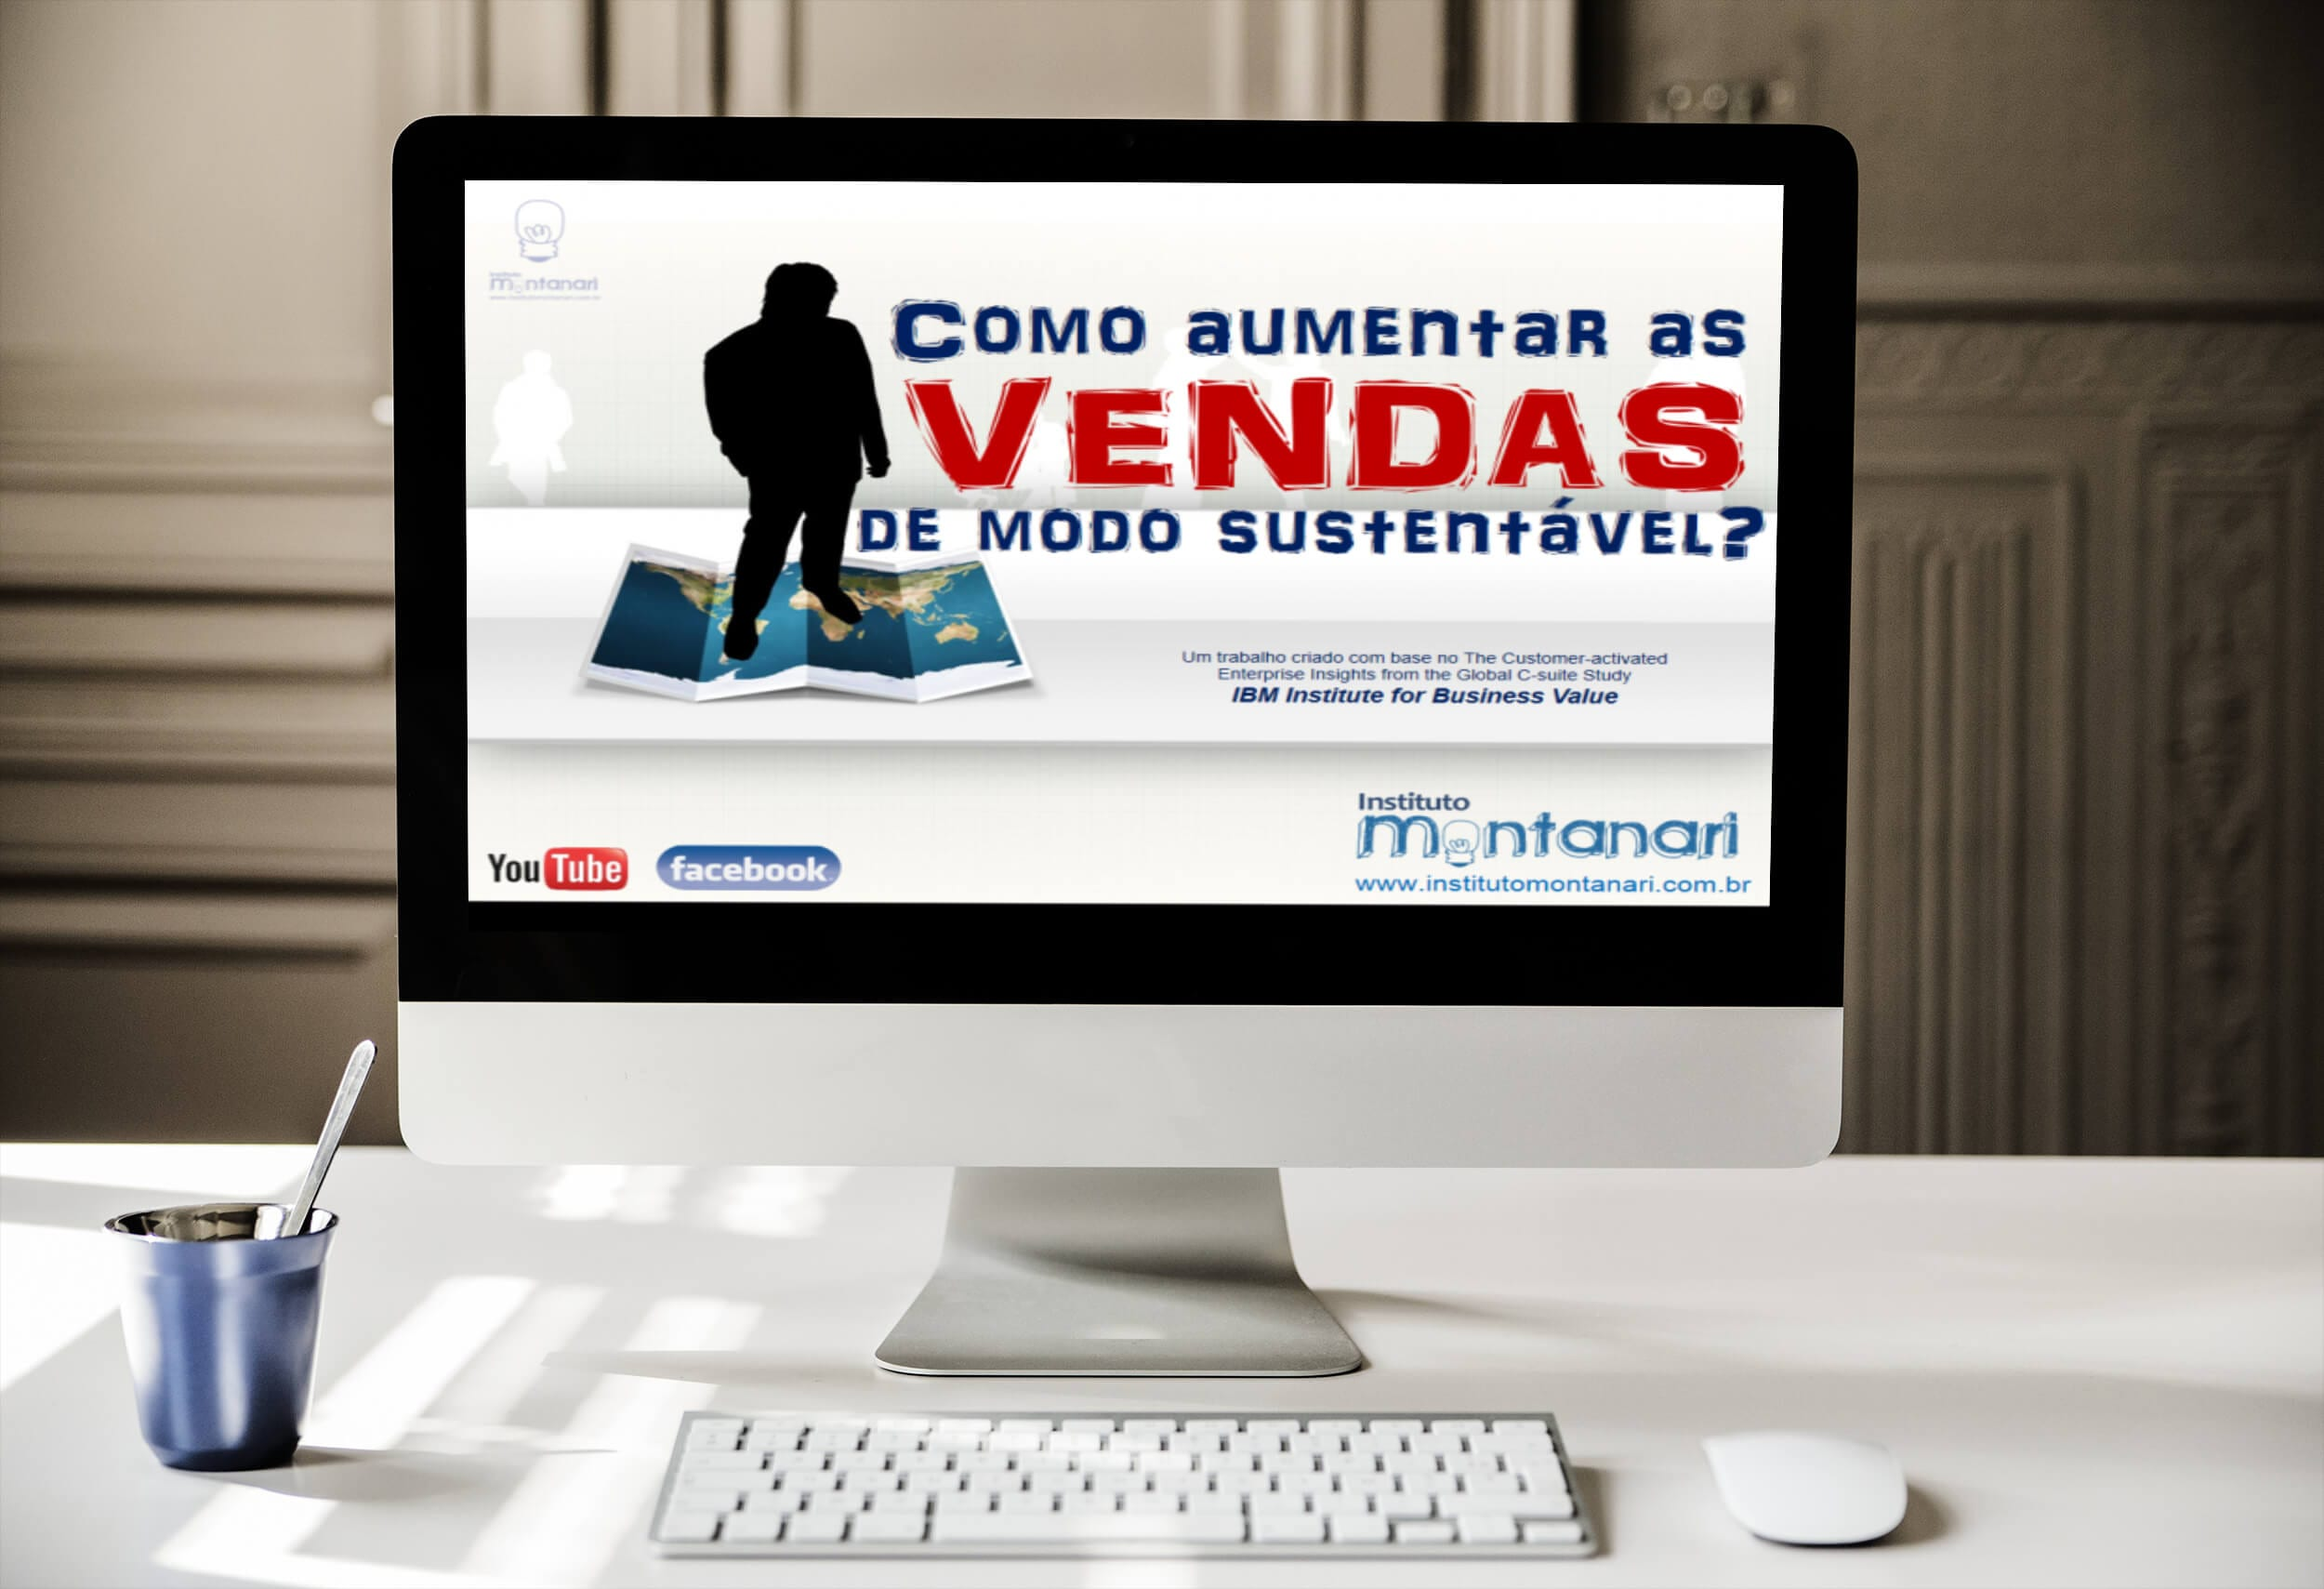 como-aumentar-as-vendas-de-modo-sustentavel-instituto-montanari